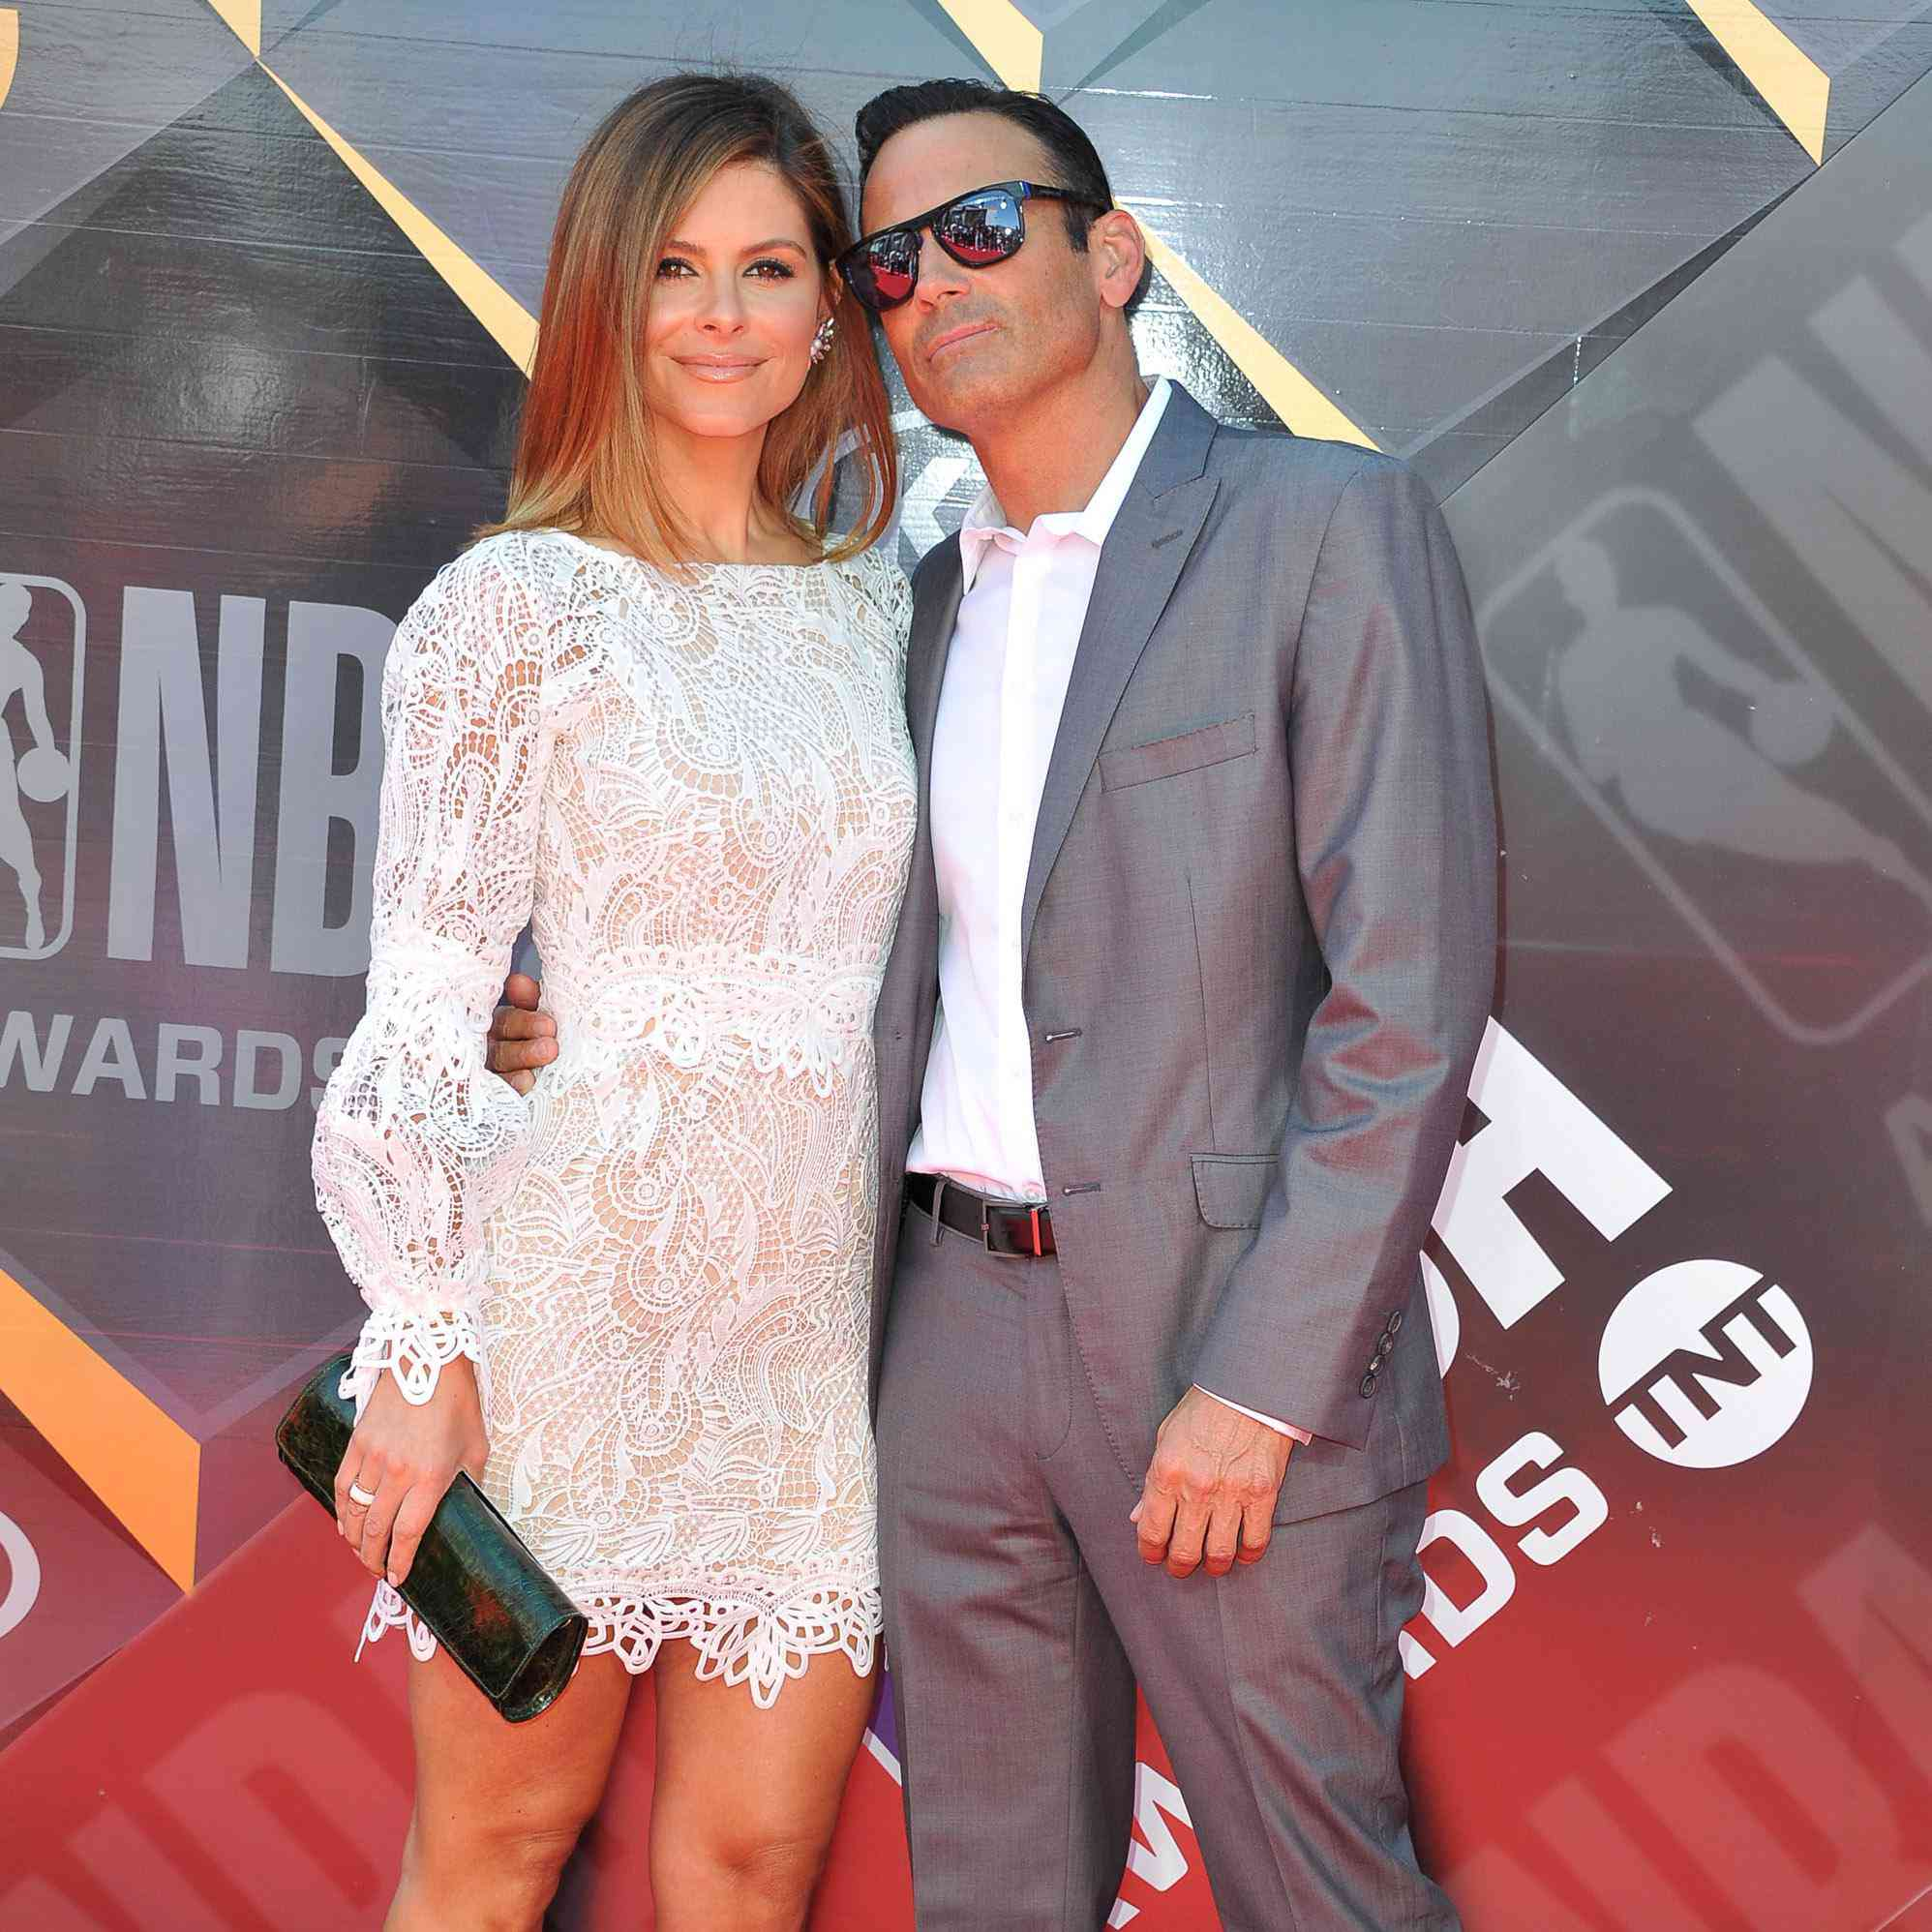 Maria Menounos and Keven Undergaro Tie the Knot in a Big